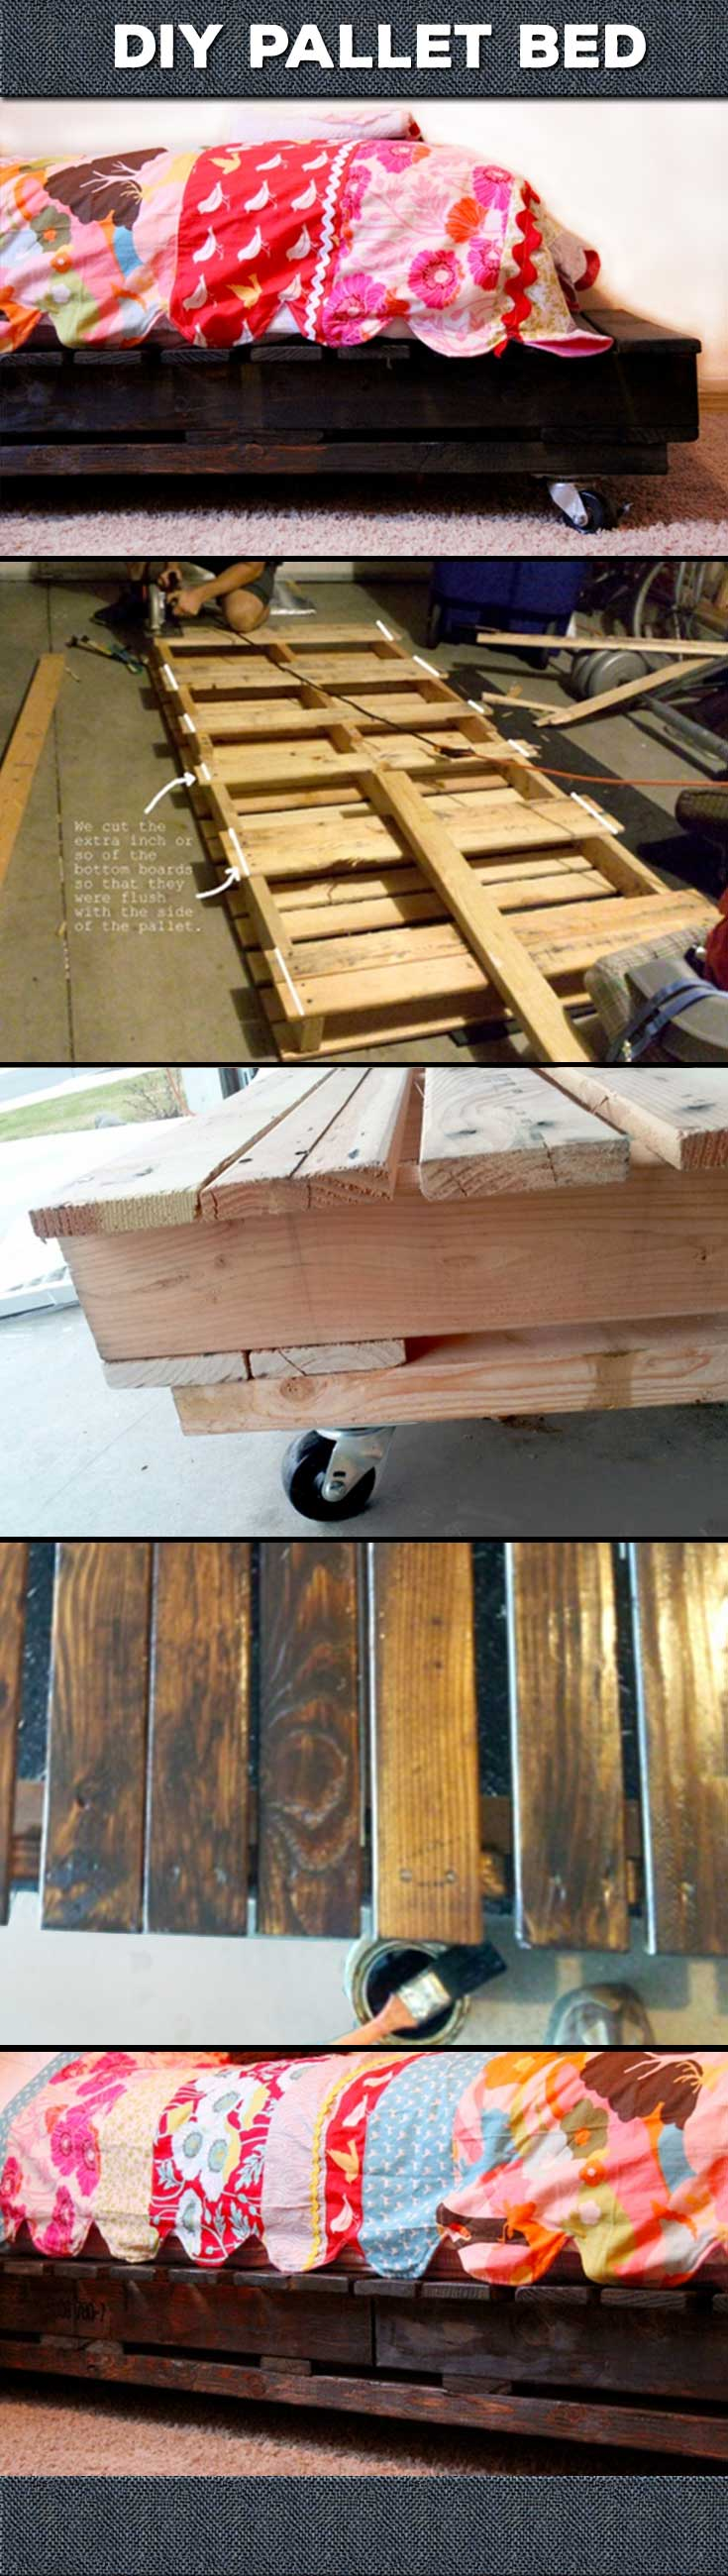 DIY Pallet Bed Tutorial for Rustic Home Decor Ideas